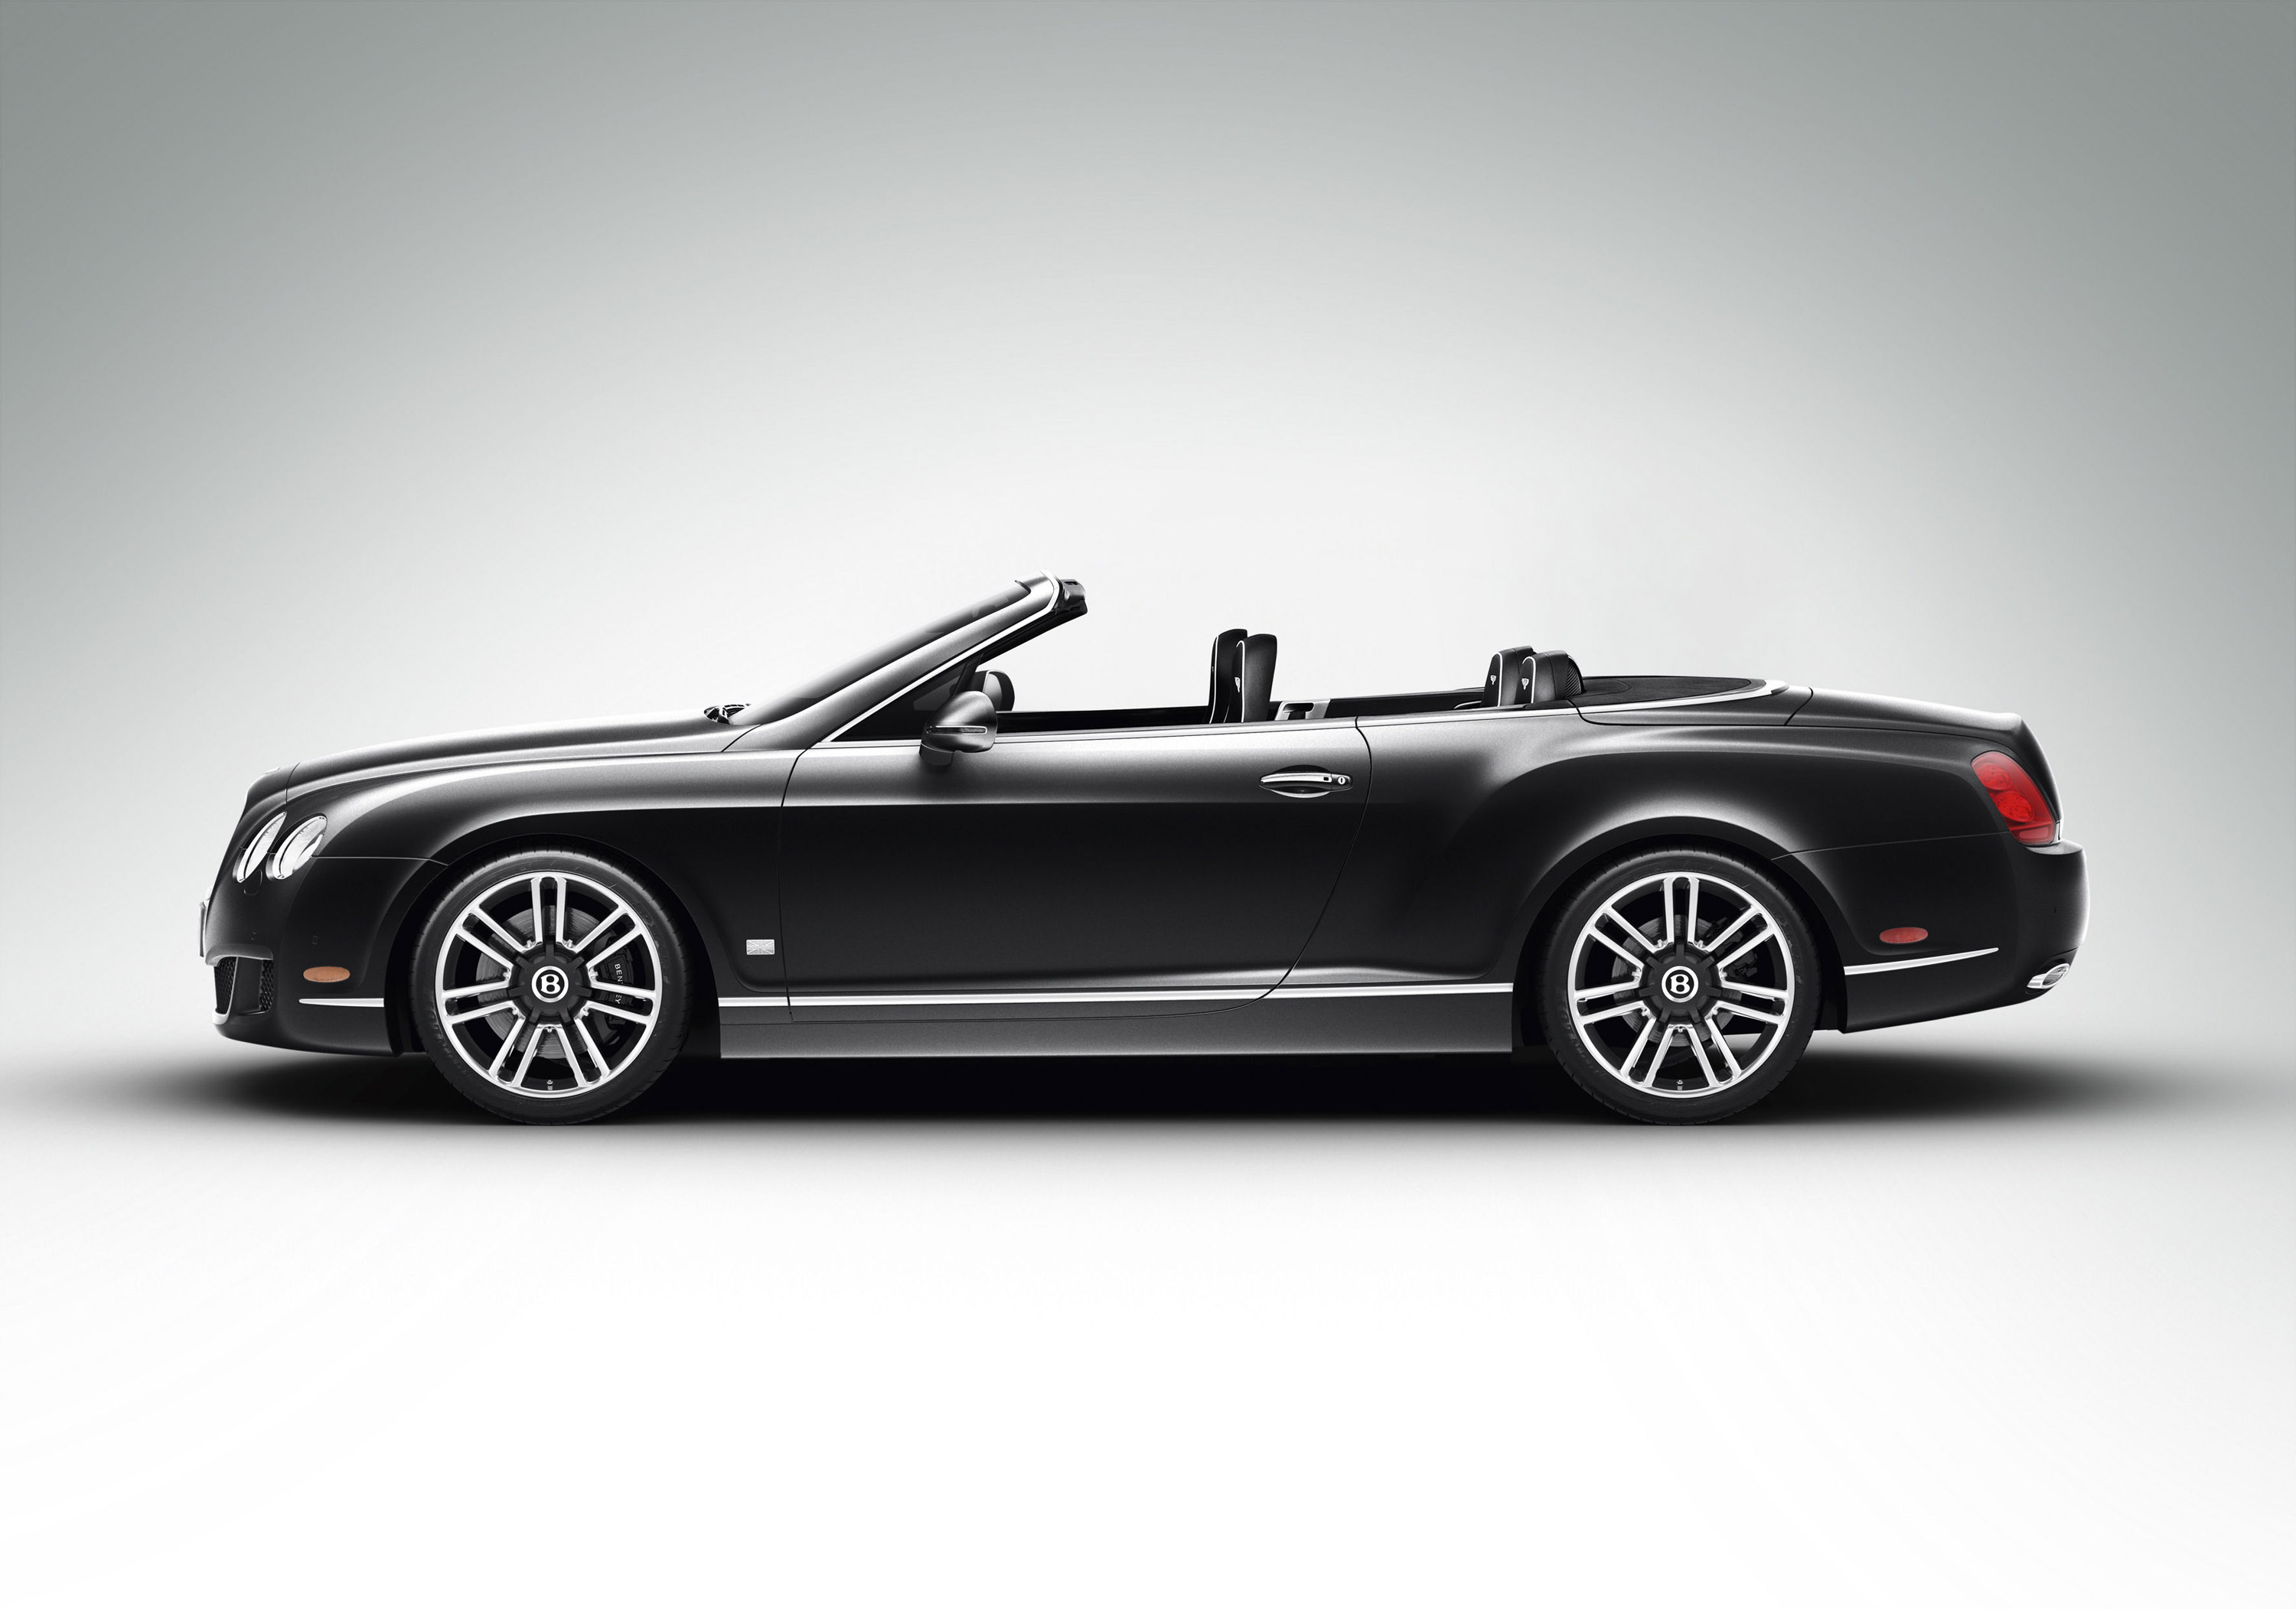 2011 Bentley Continental GTC And GTC Speed 80 11 Models Combine Sport,  Luxury And Unique Style